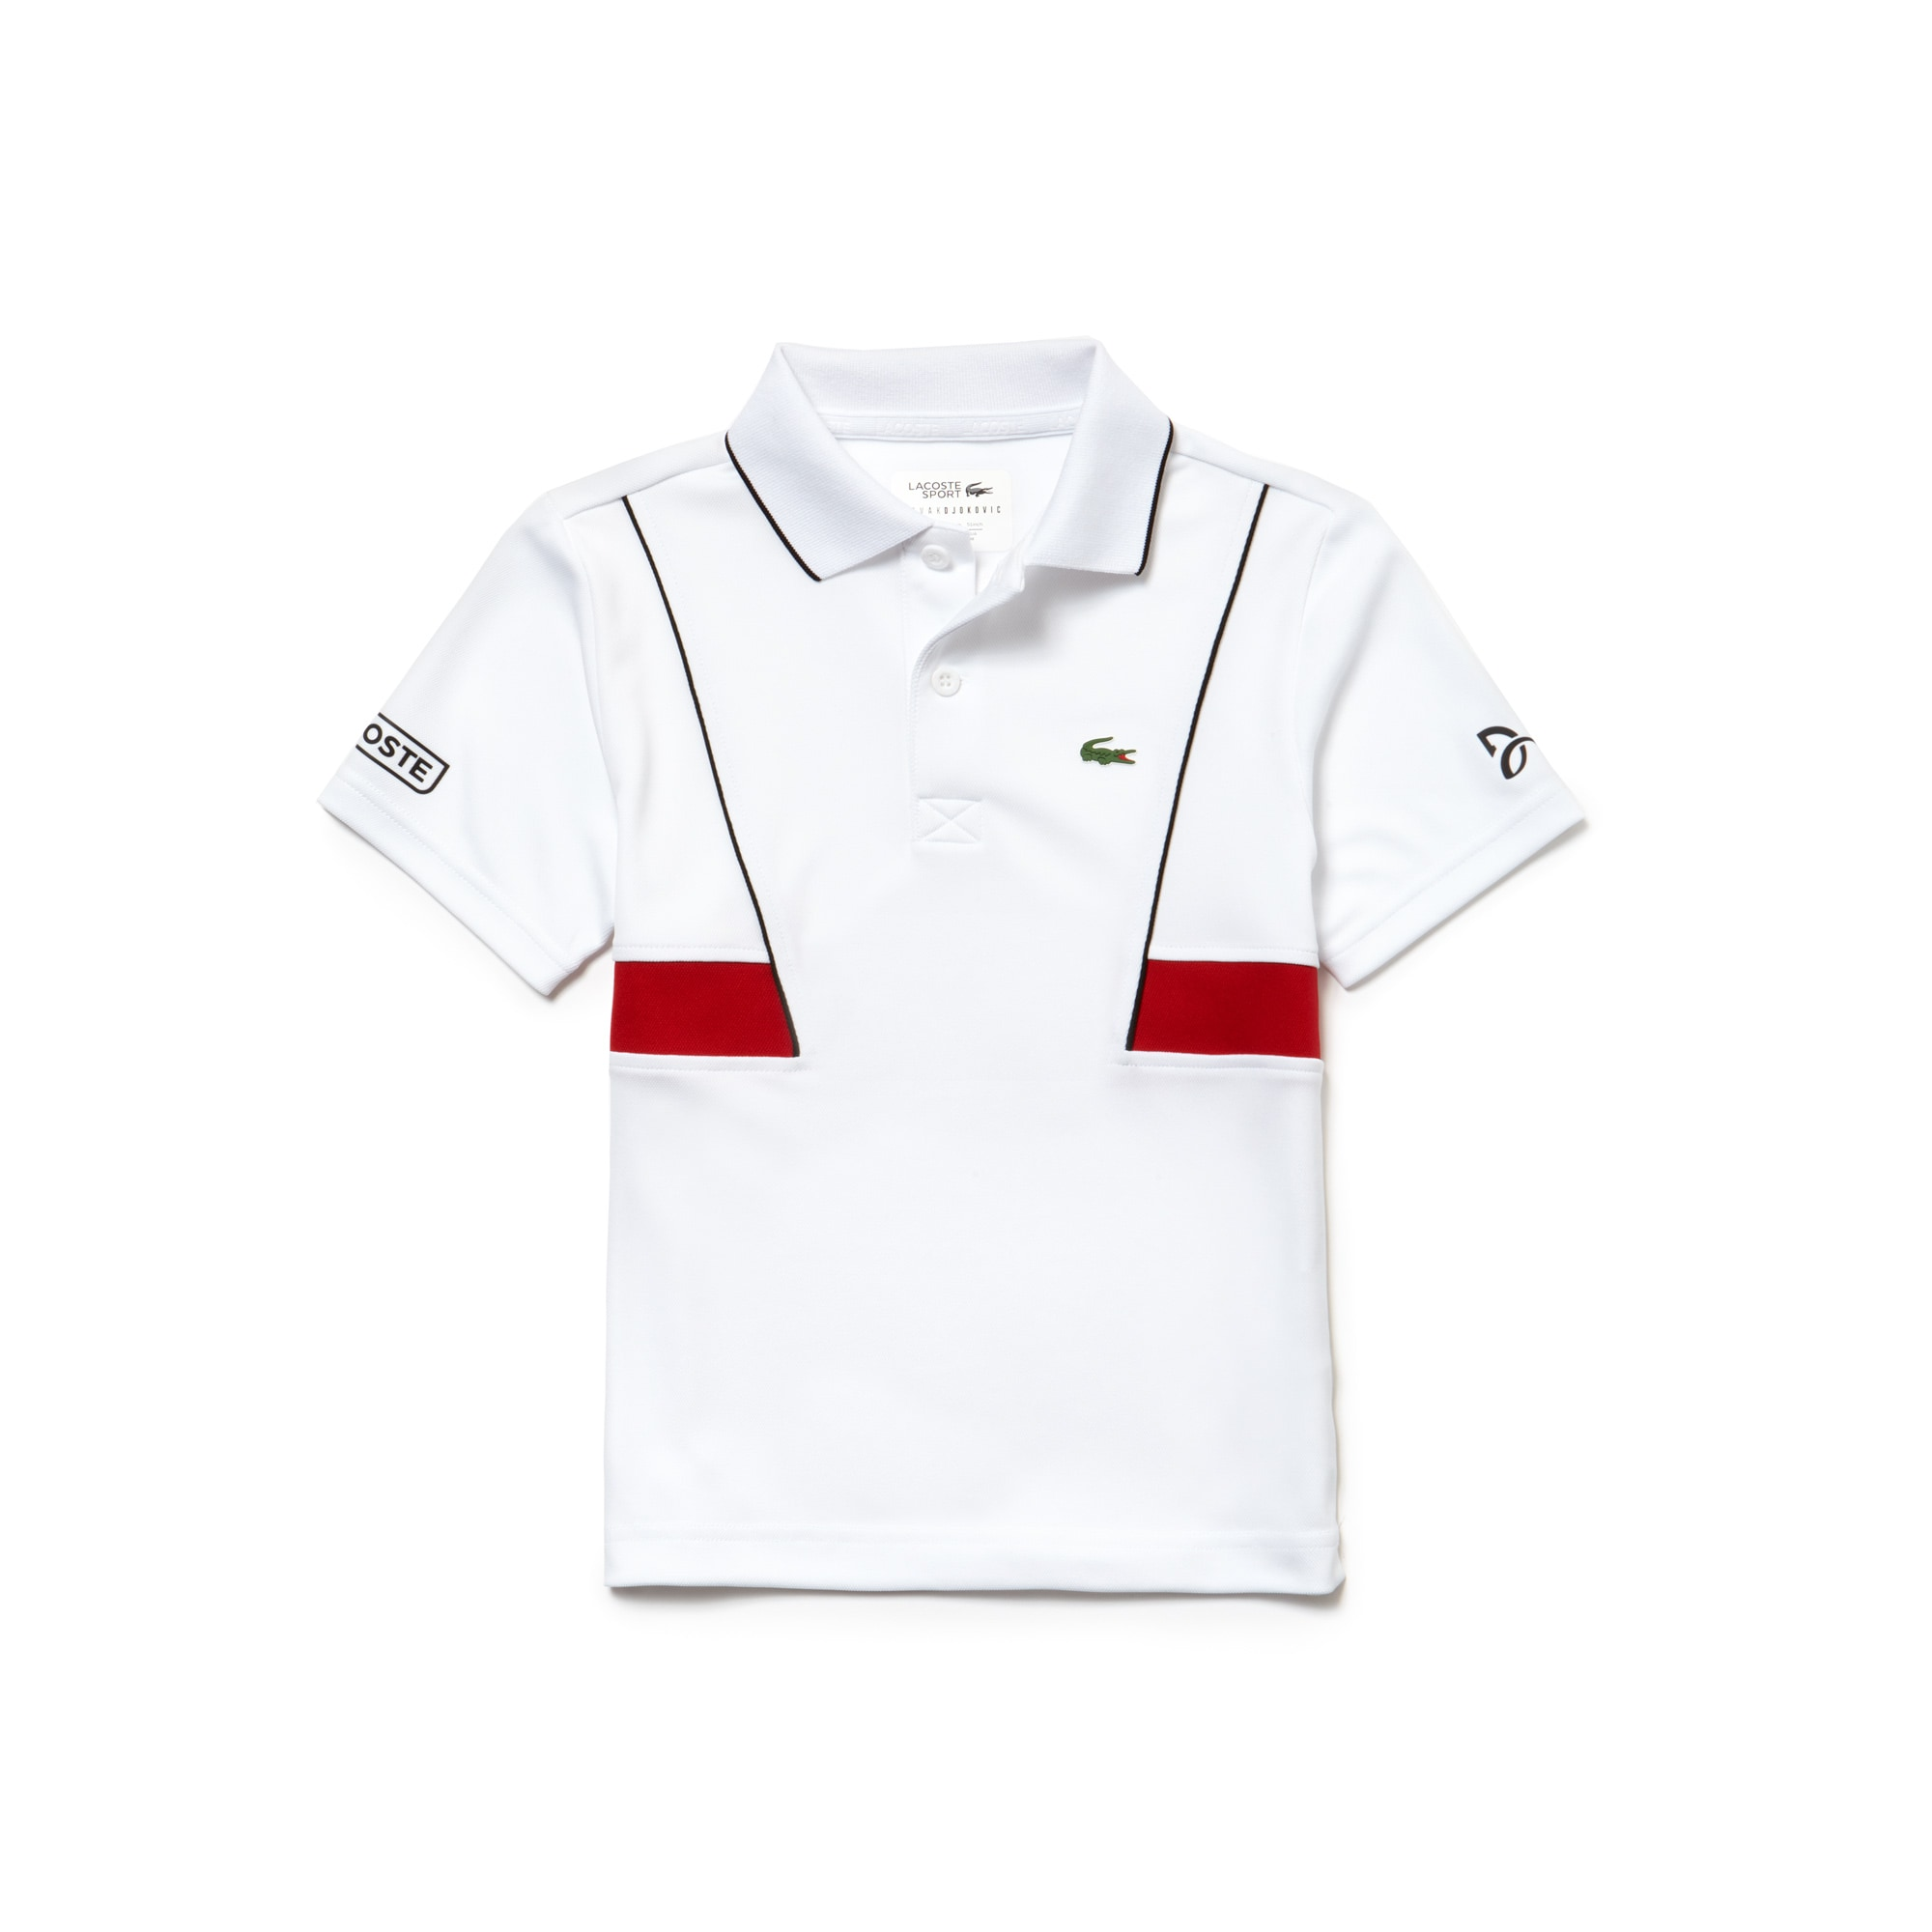 Boys' LACOSTE SPORT NOVAK DJOKOVIC COLLECTION Technical Piqué Polo